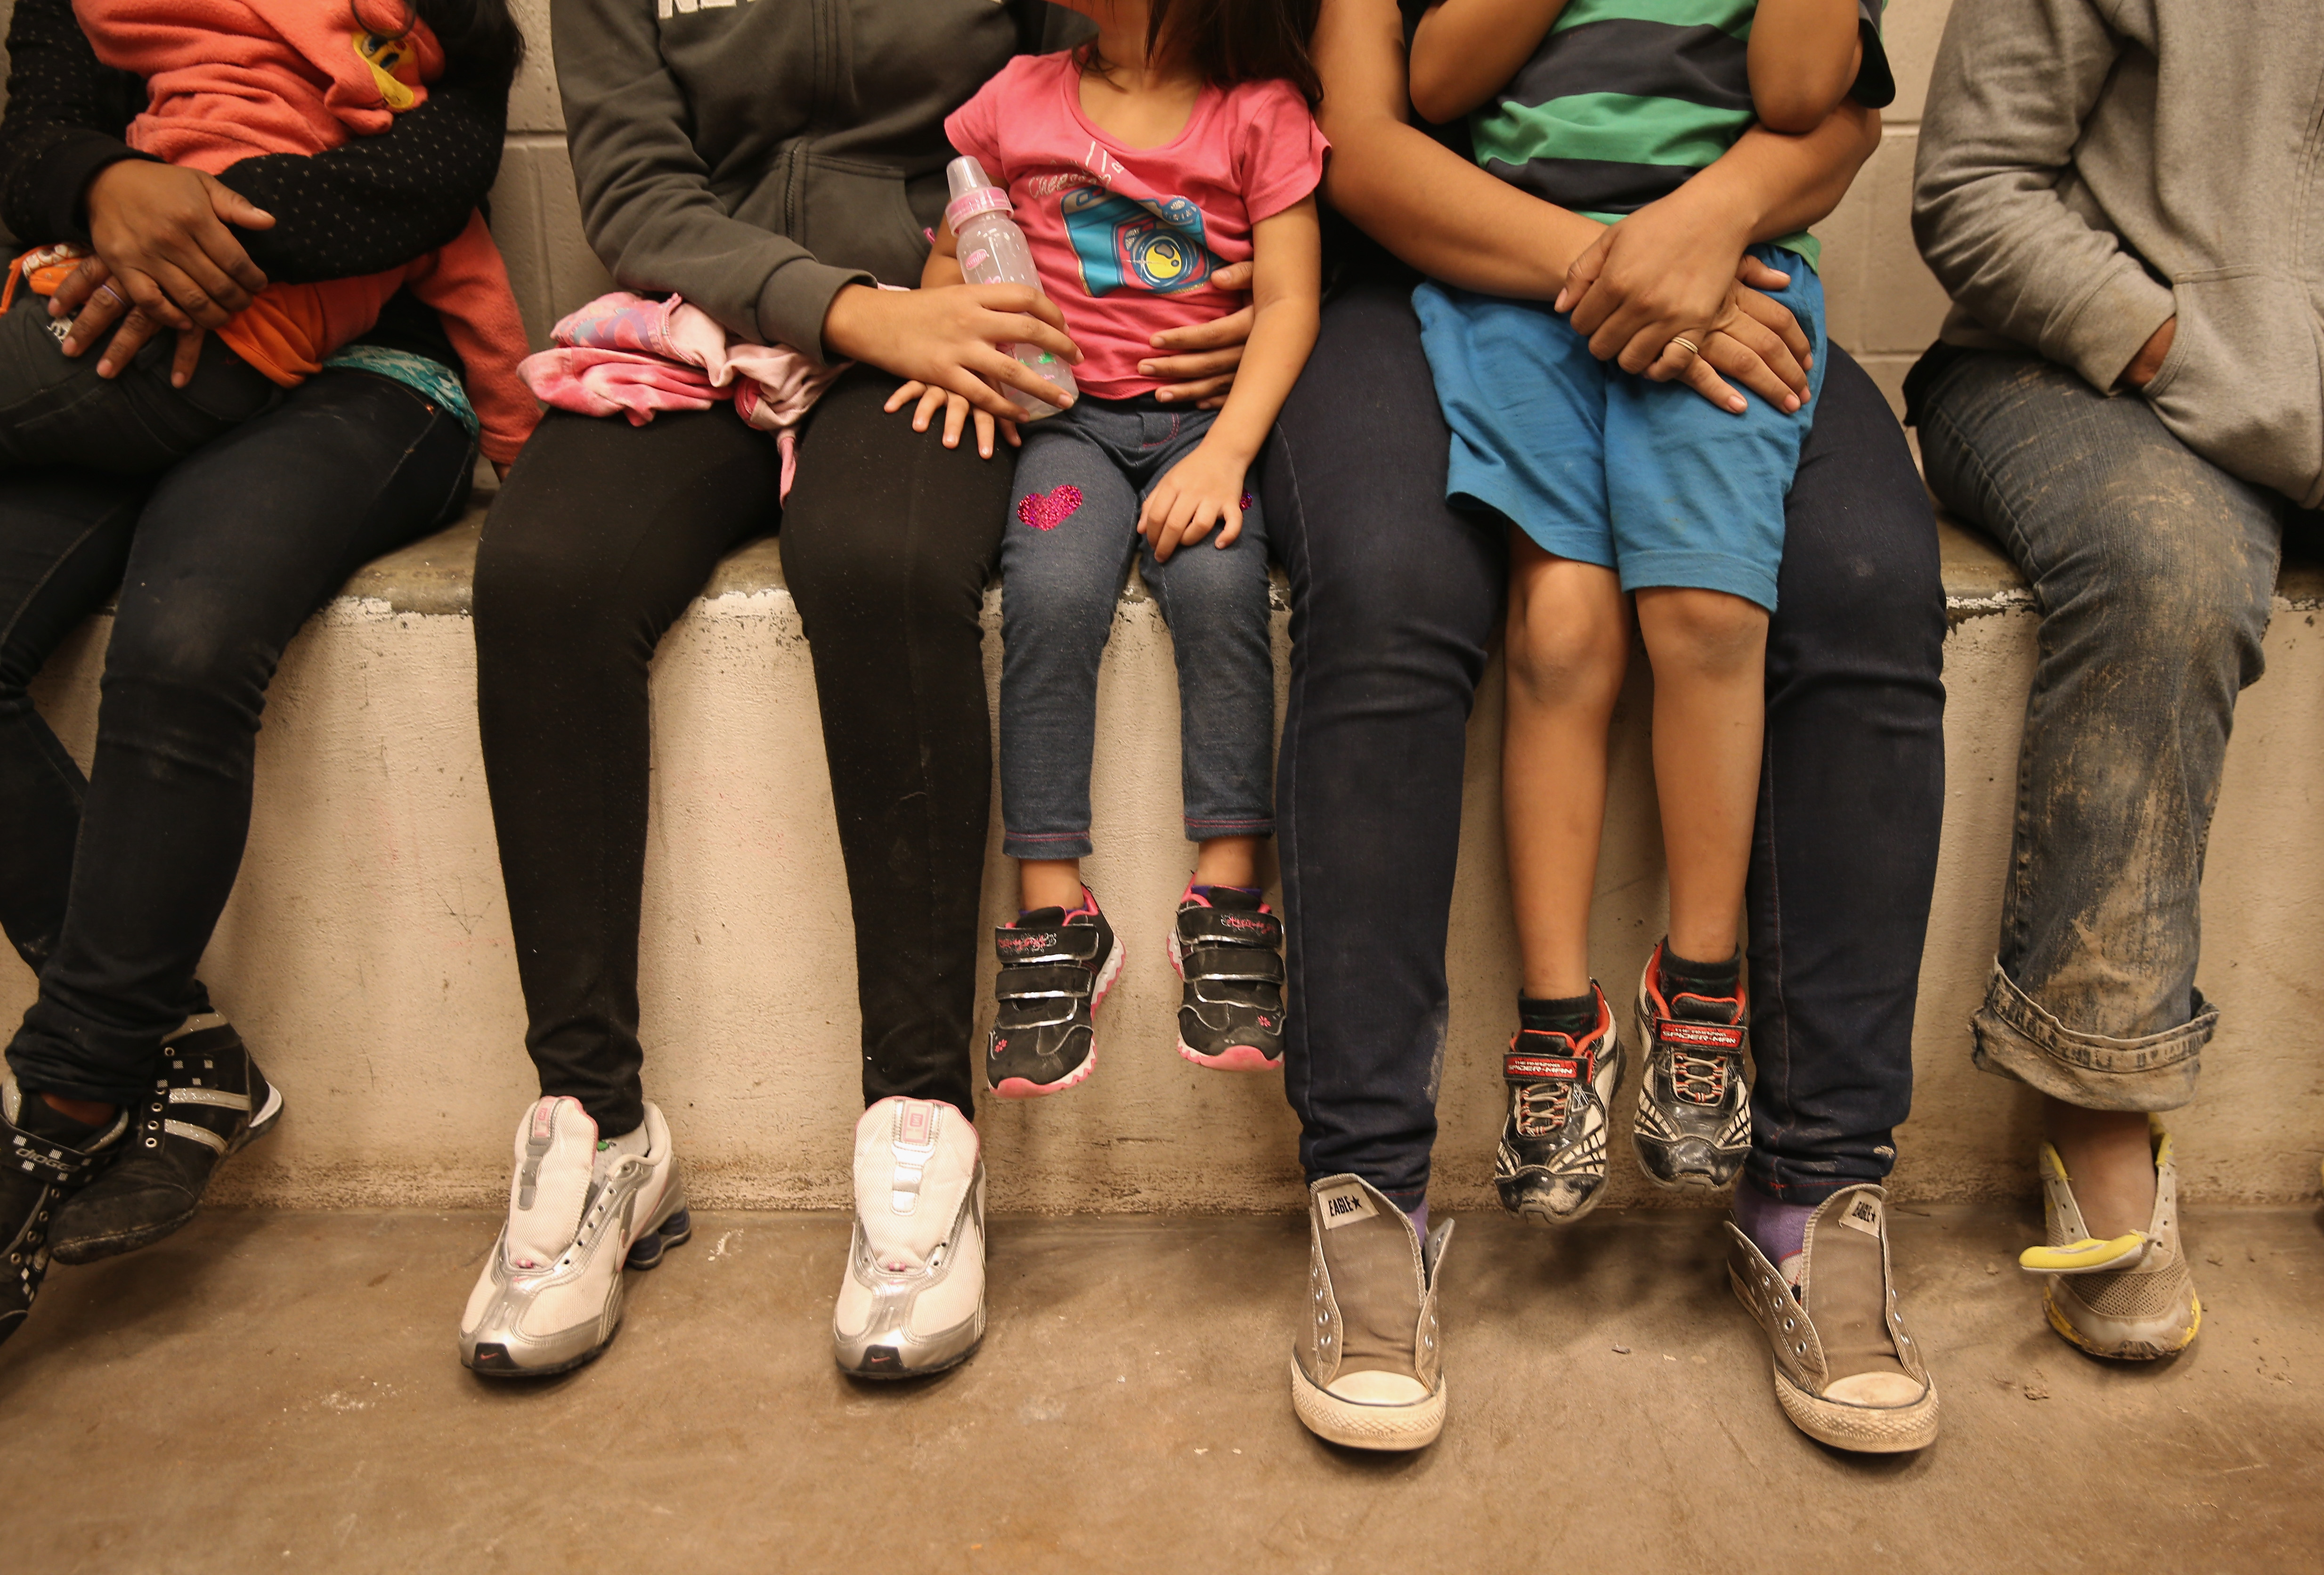 Women and children sit in a holding cell at a U.S. Border Patrol processing center after being detained by agents near the U.S.-Mexico border on September 8, 2014 near McAllen, Texas.